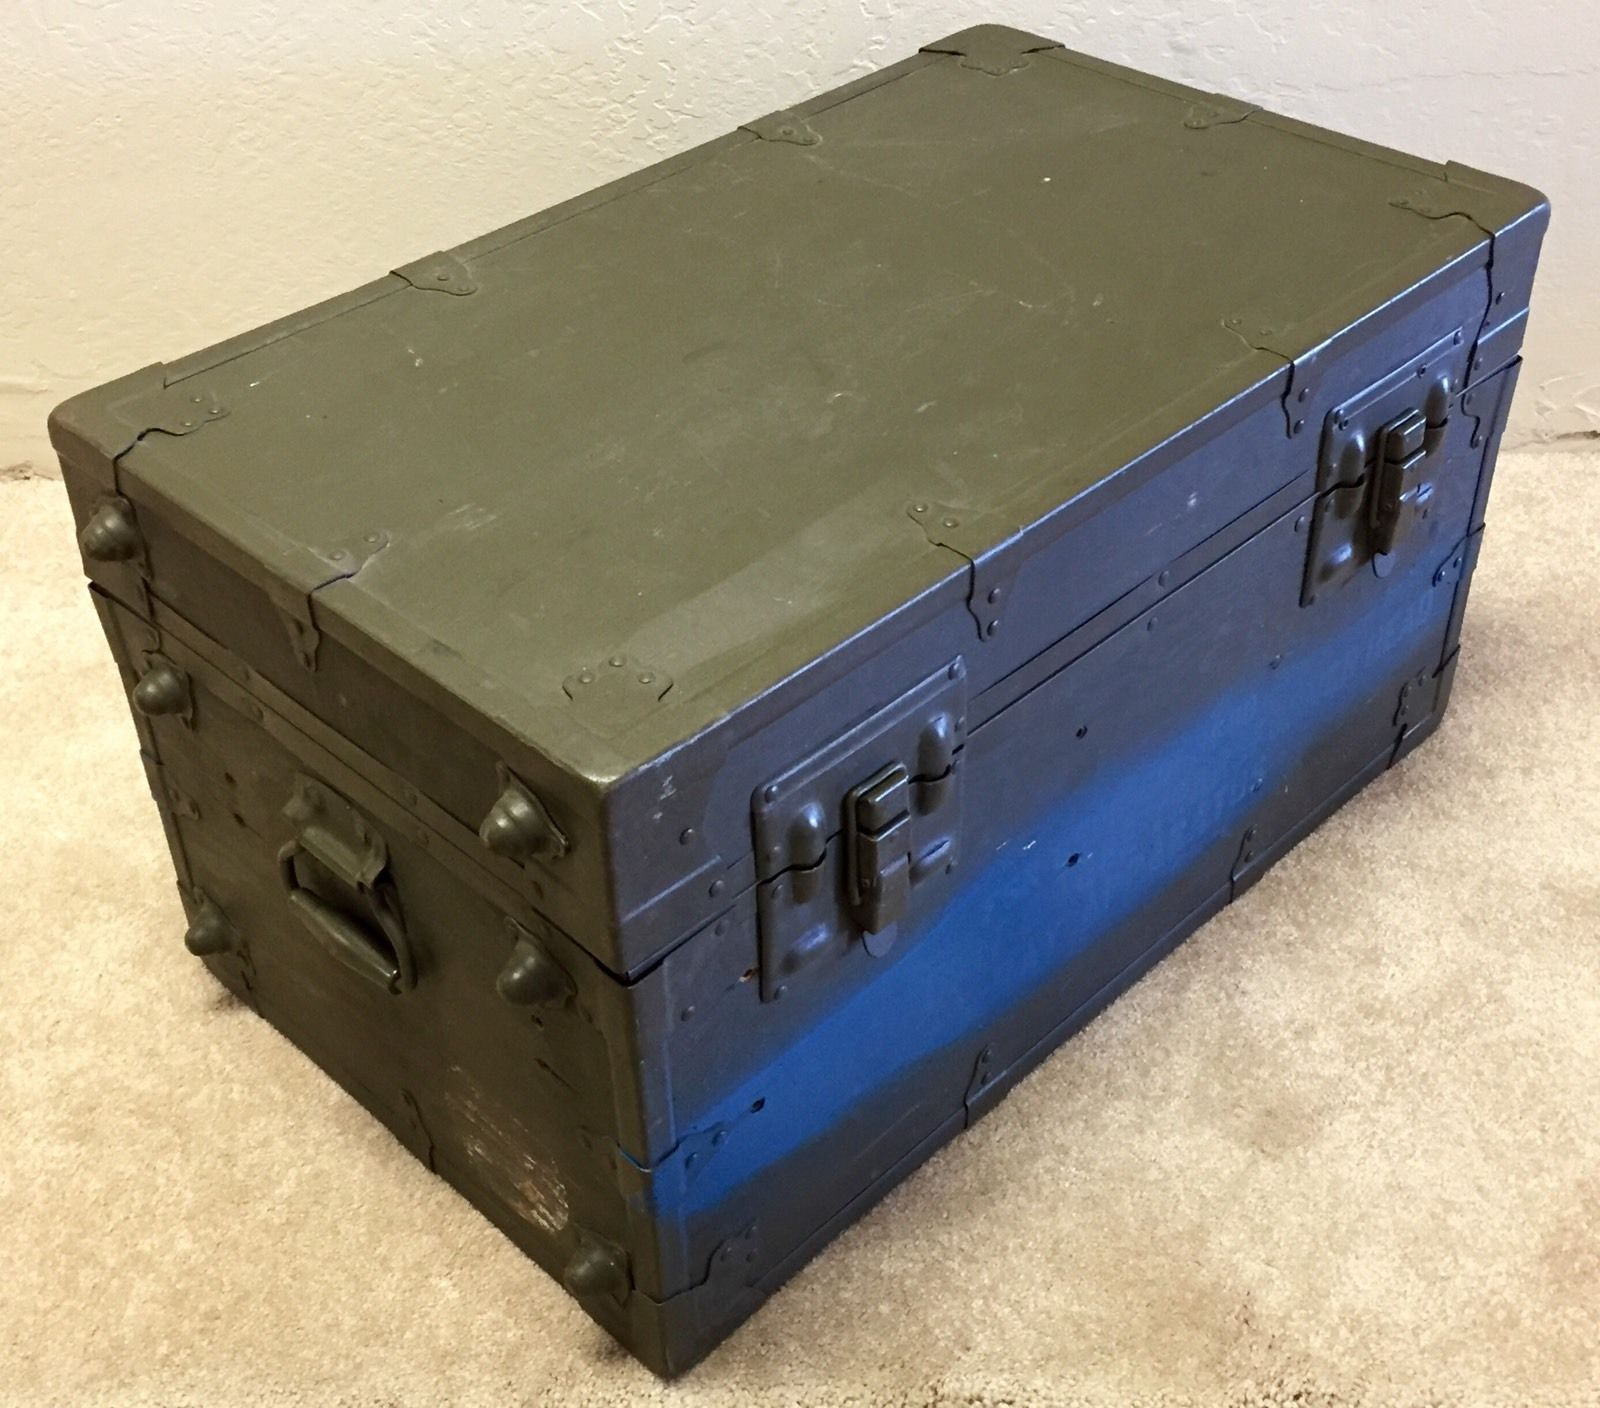 Foot Locker Storage Chest New Vintage Us Military Army Brown Xray Equipment Foot Locker Trunk Design Decoration